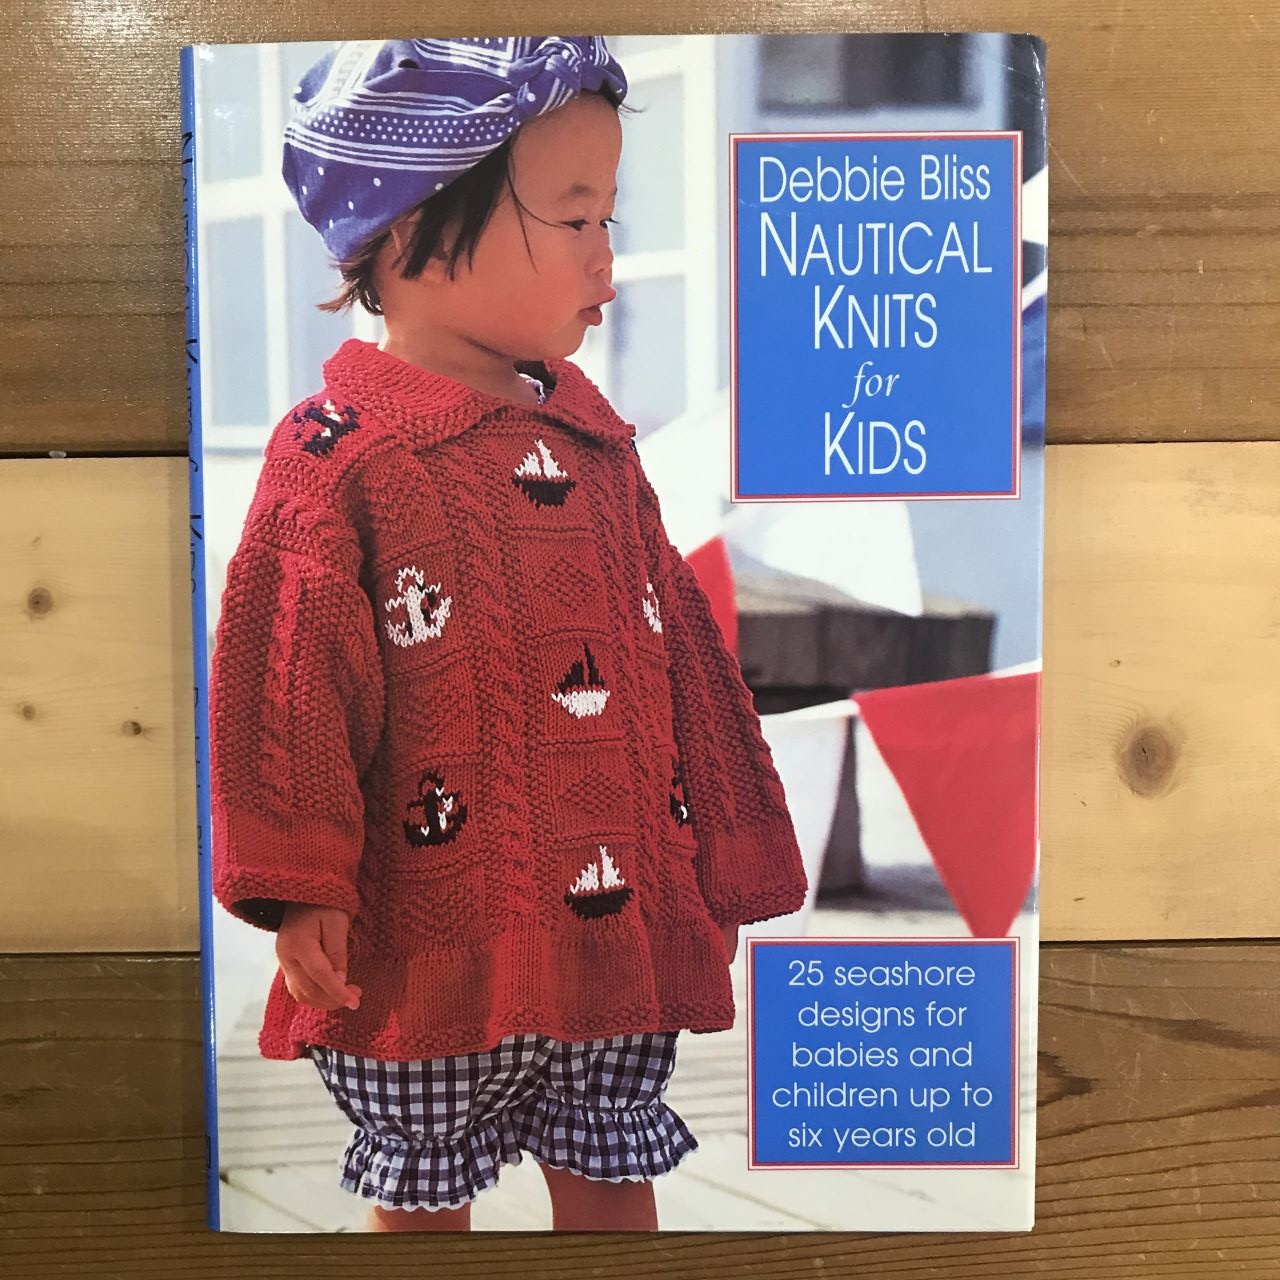 Debbie Bliss Nautical Knits for Kids